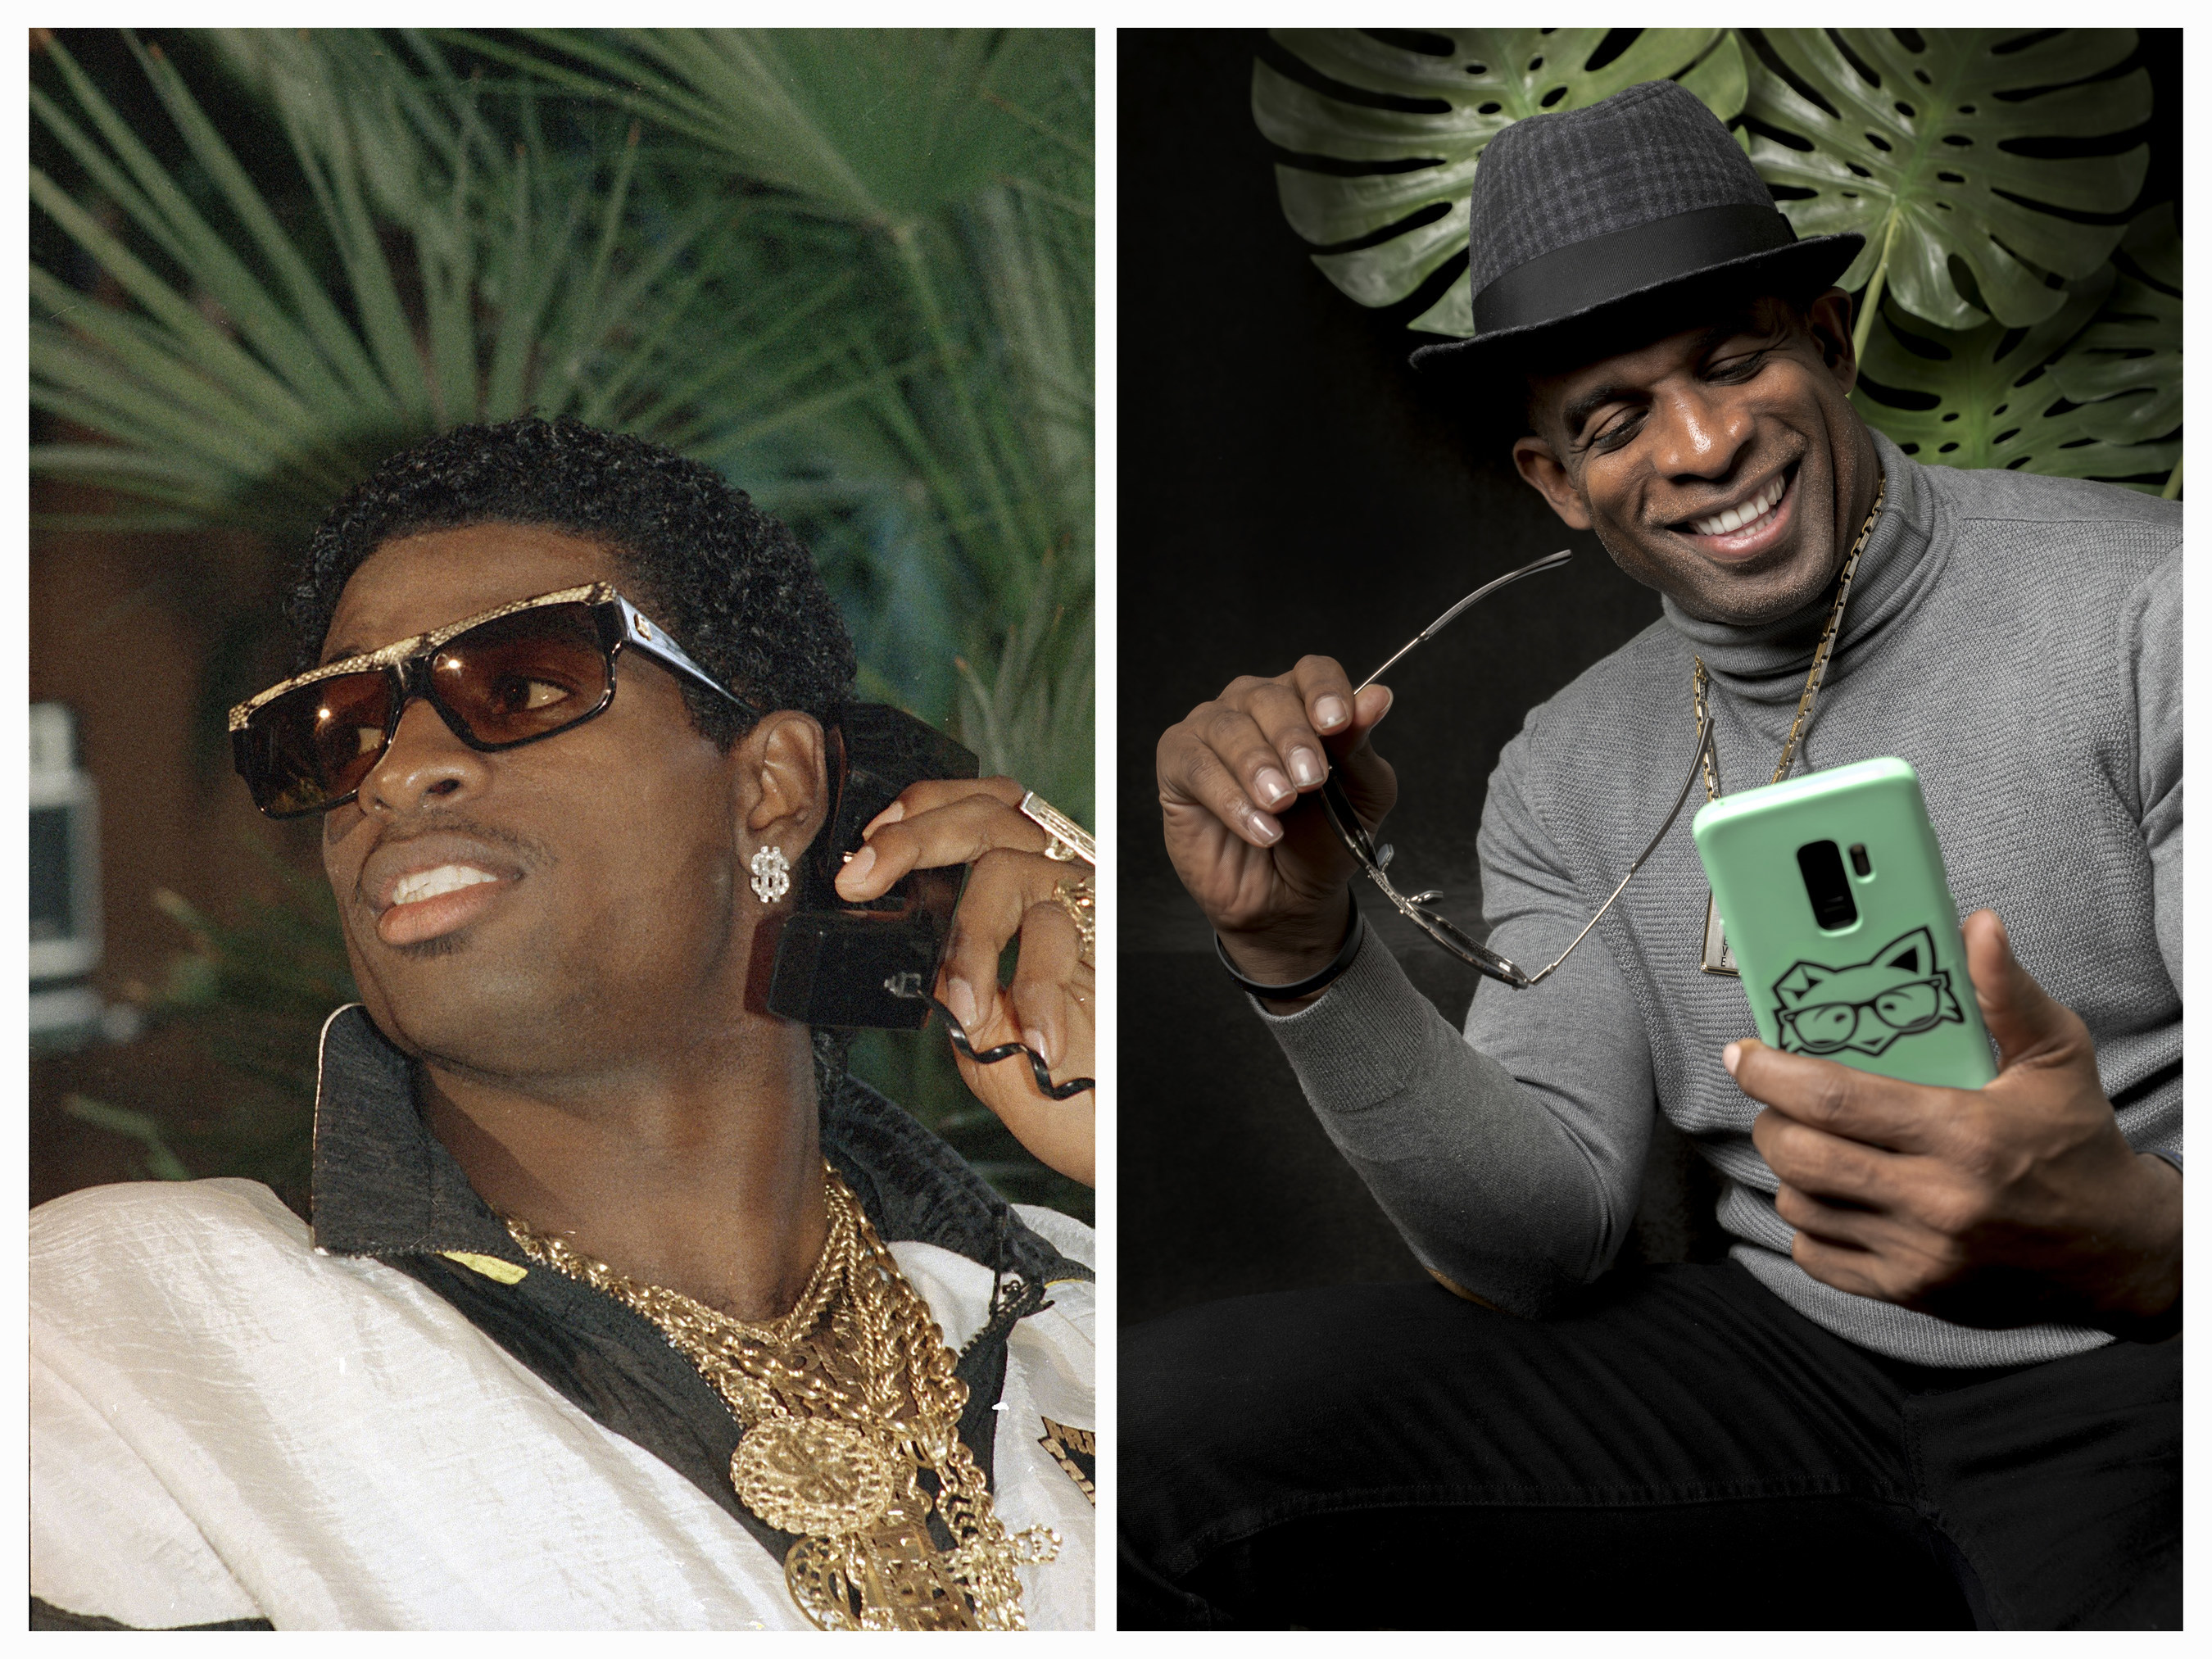 Mint Mobile has joined forces with NFL legend, Deion Sanders. As part of its larger Super Bowl campaign, the upstart wireless brand has updated Prime Time's iconic 1989 Draft Day photo…and upgraded his phone! Mint Mobile is the new and affordable way to get wireless service.